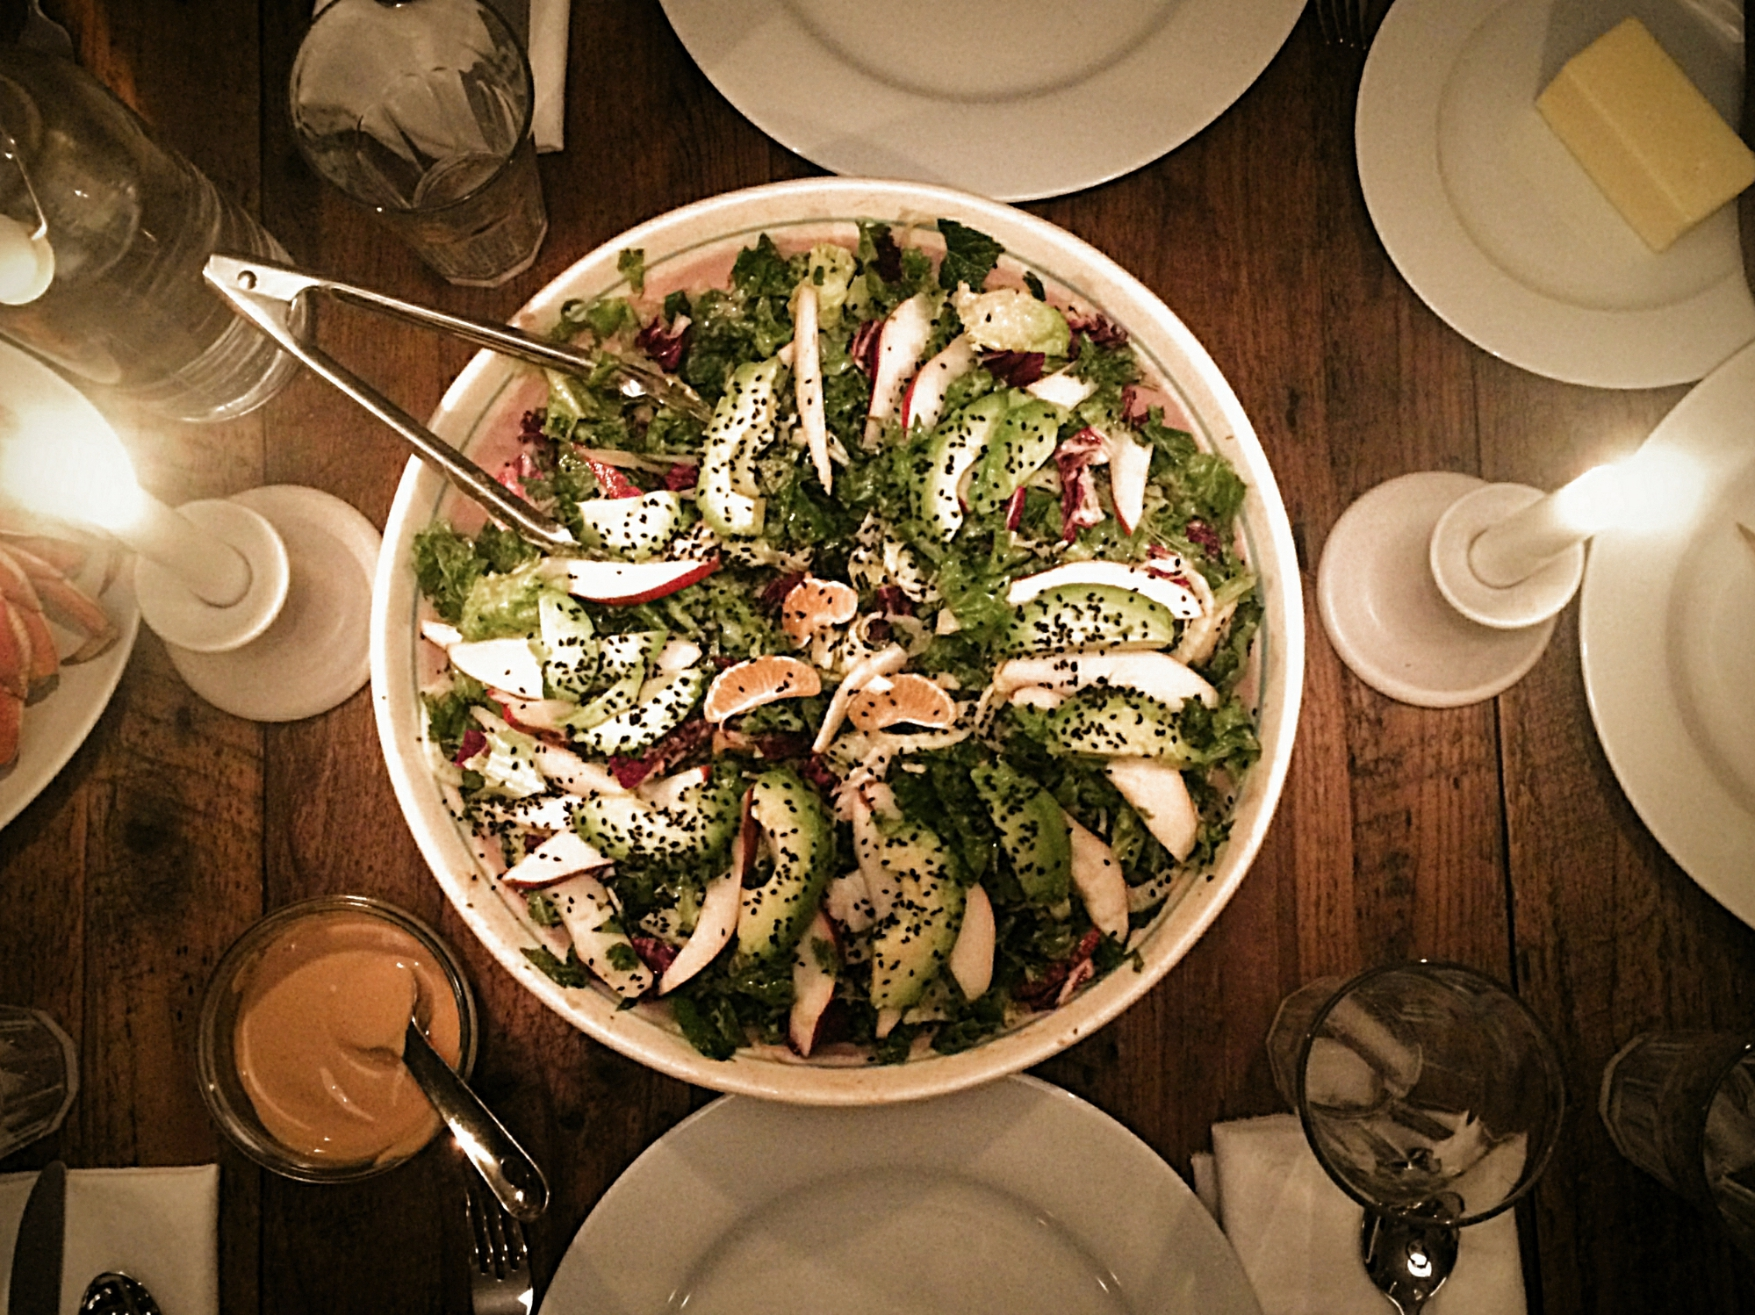 Winter Greens Salad with Tahini Dressing